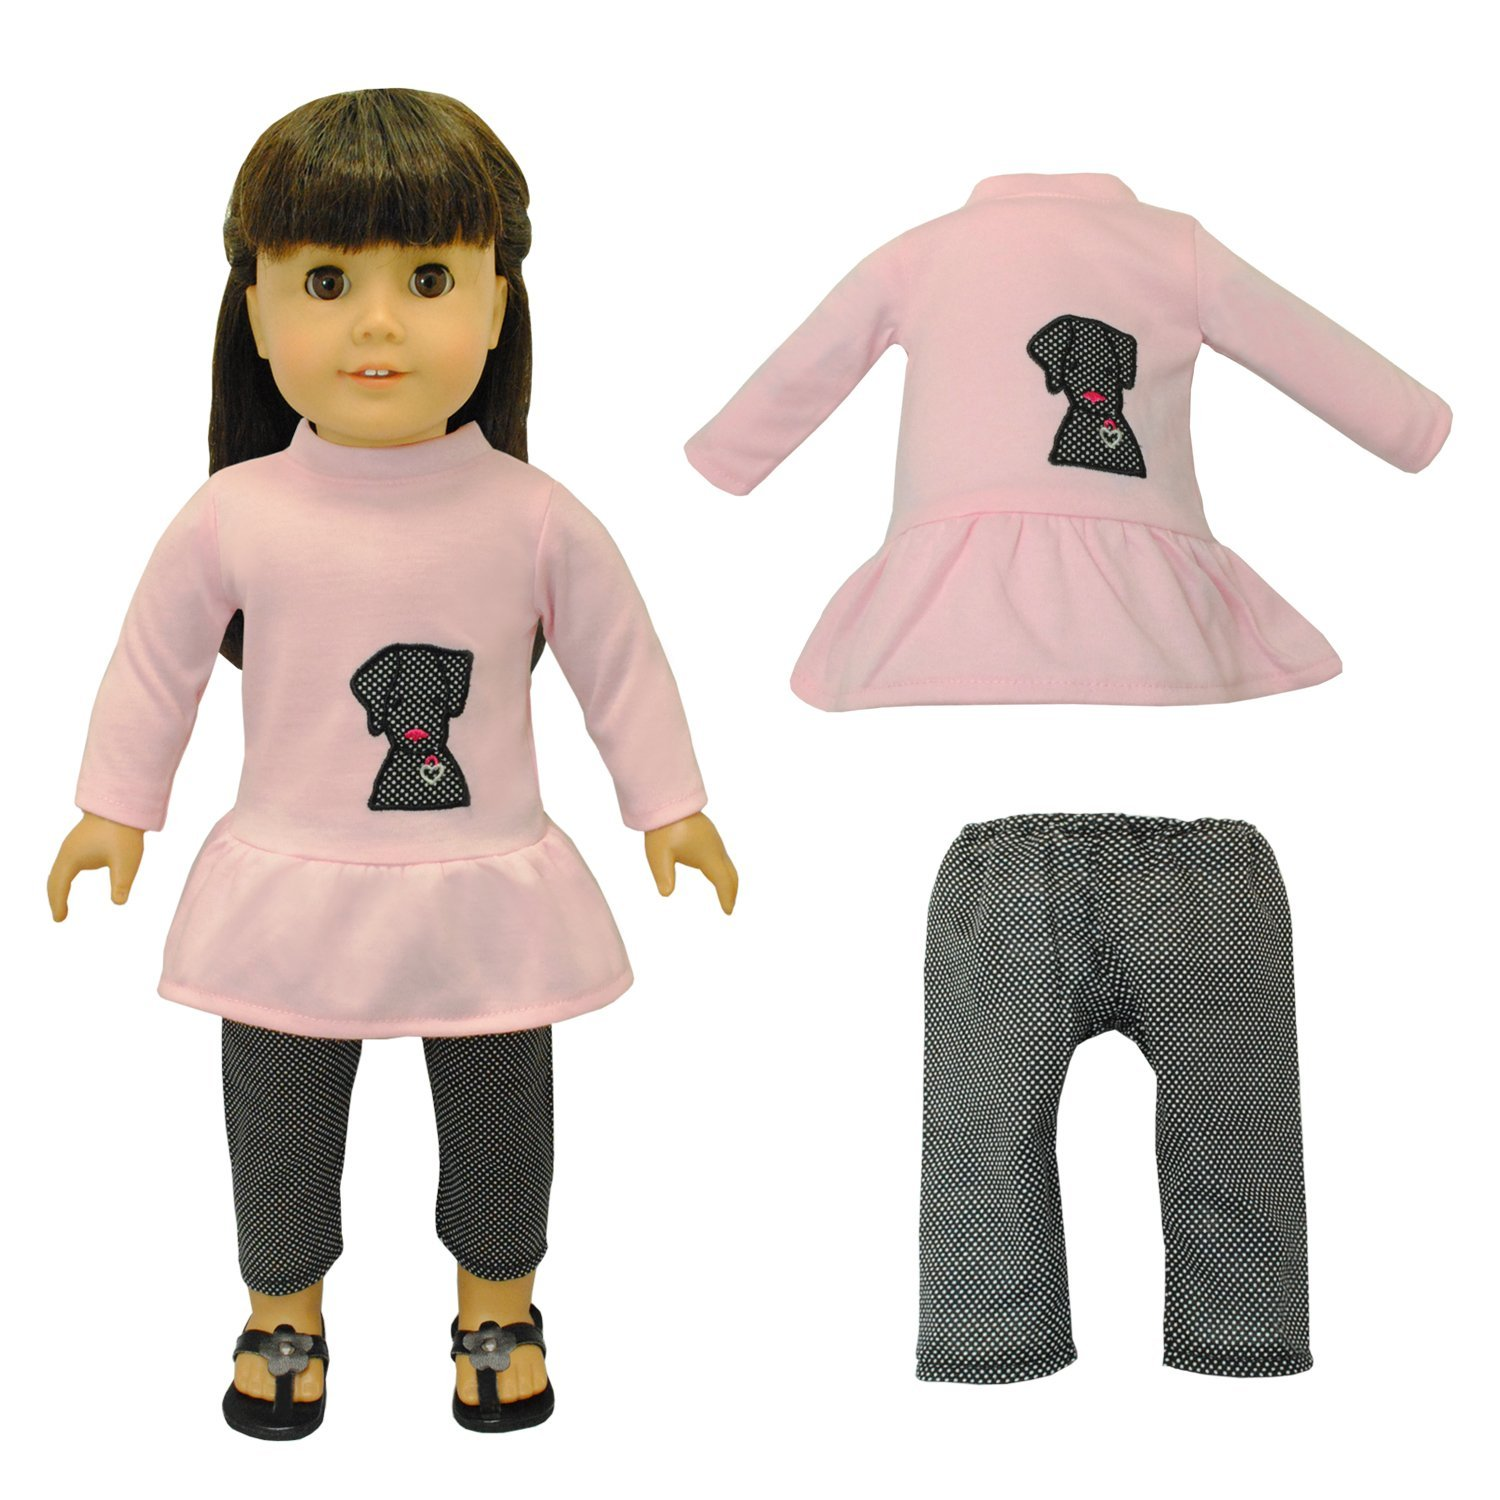 Pink Flower Power Print Tights  Fits 18 inch American Girl Dolls